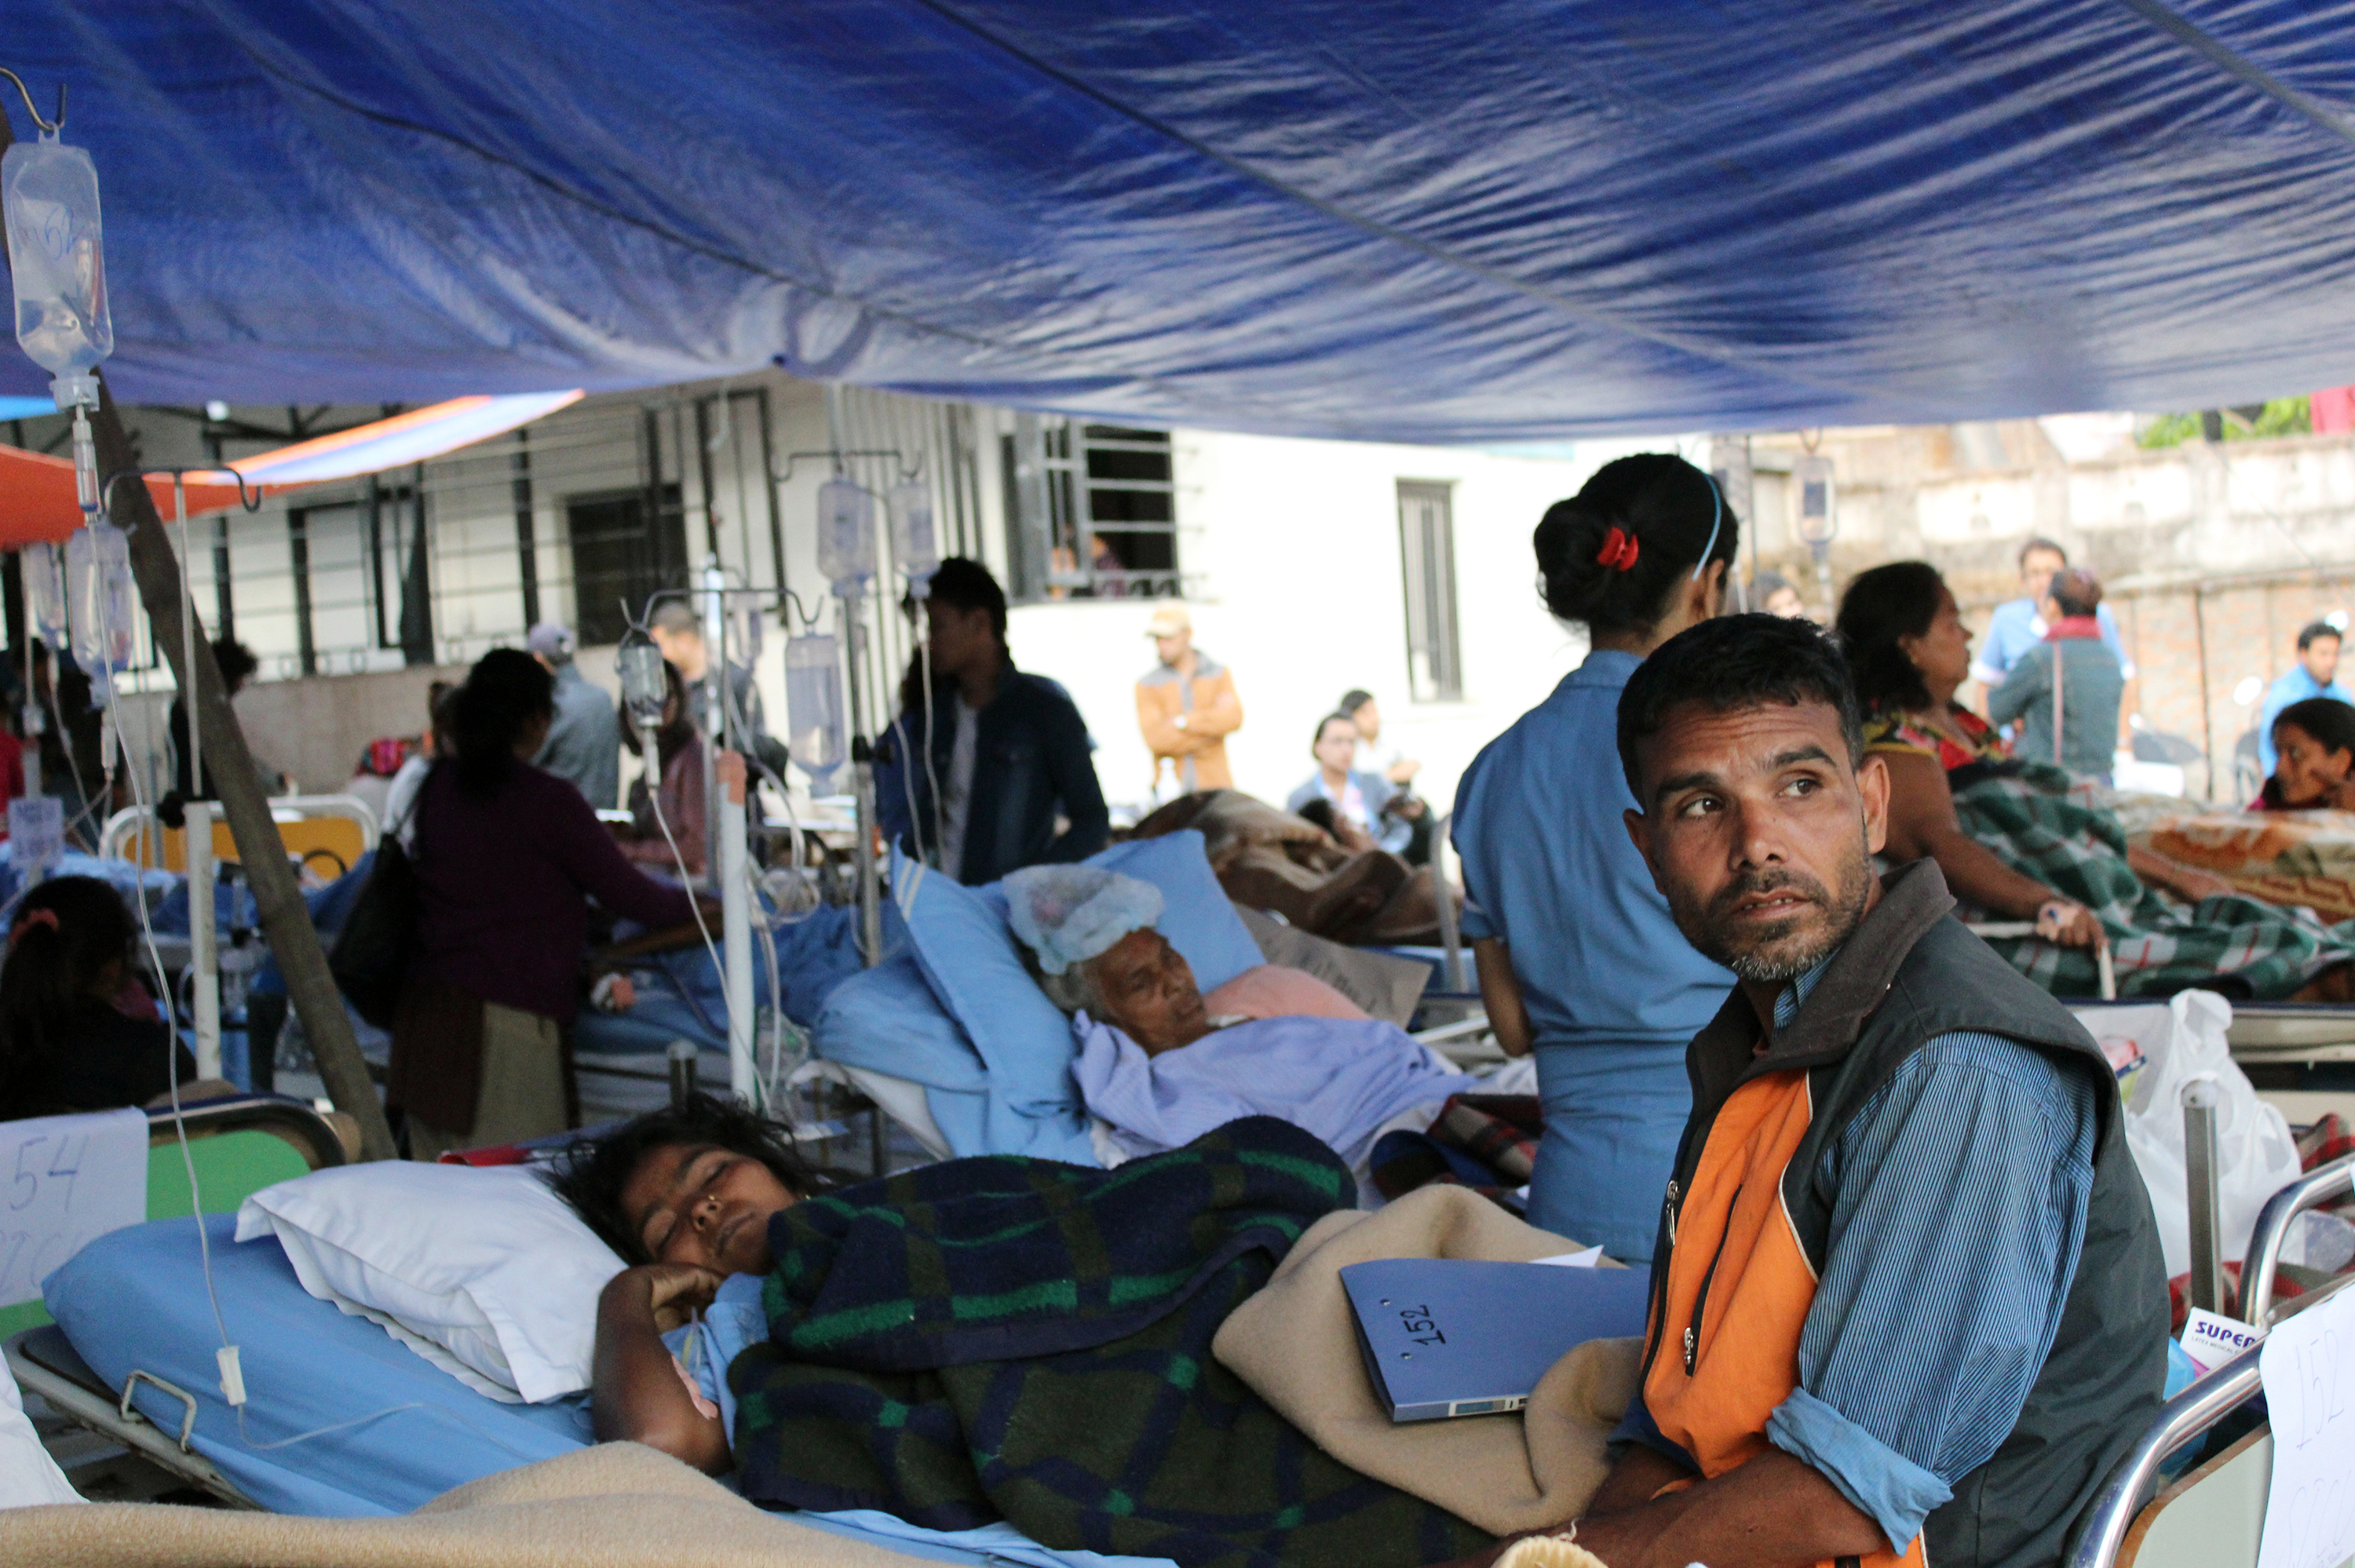 Wounded Nepalis Stream Into Kathmandu, Overwhelming Hospitals